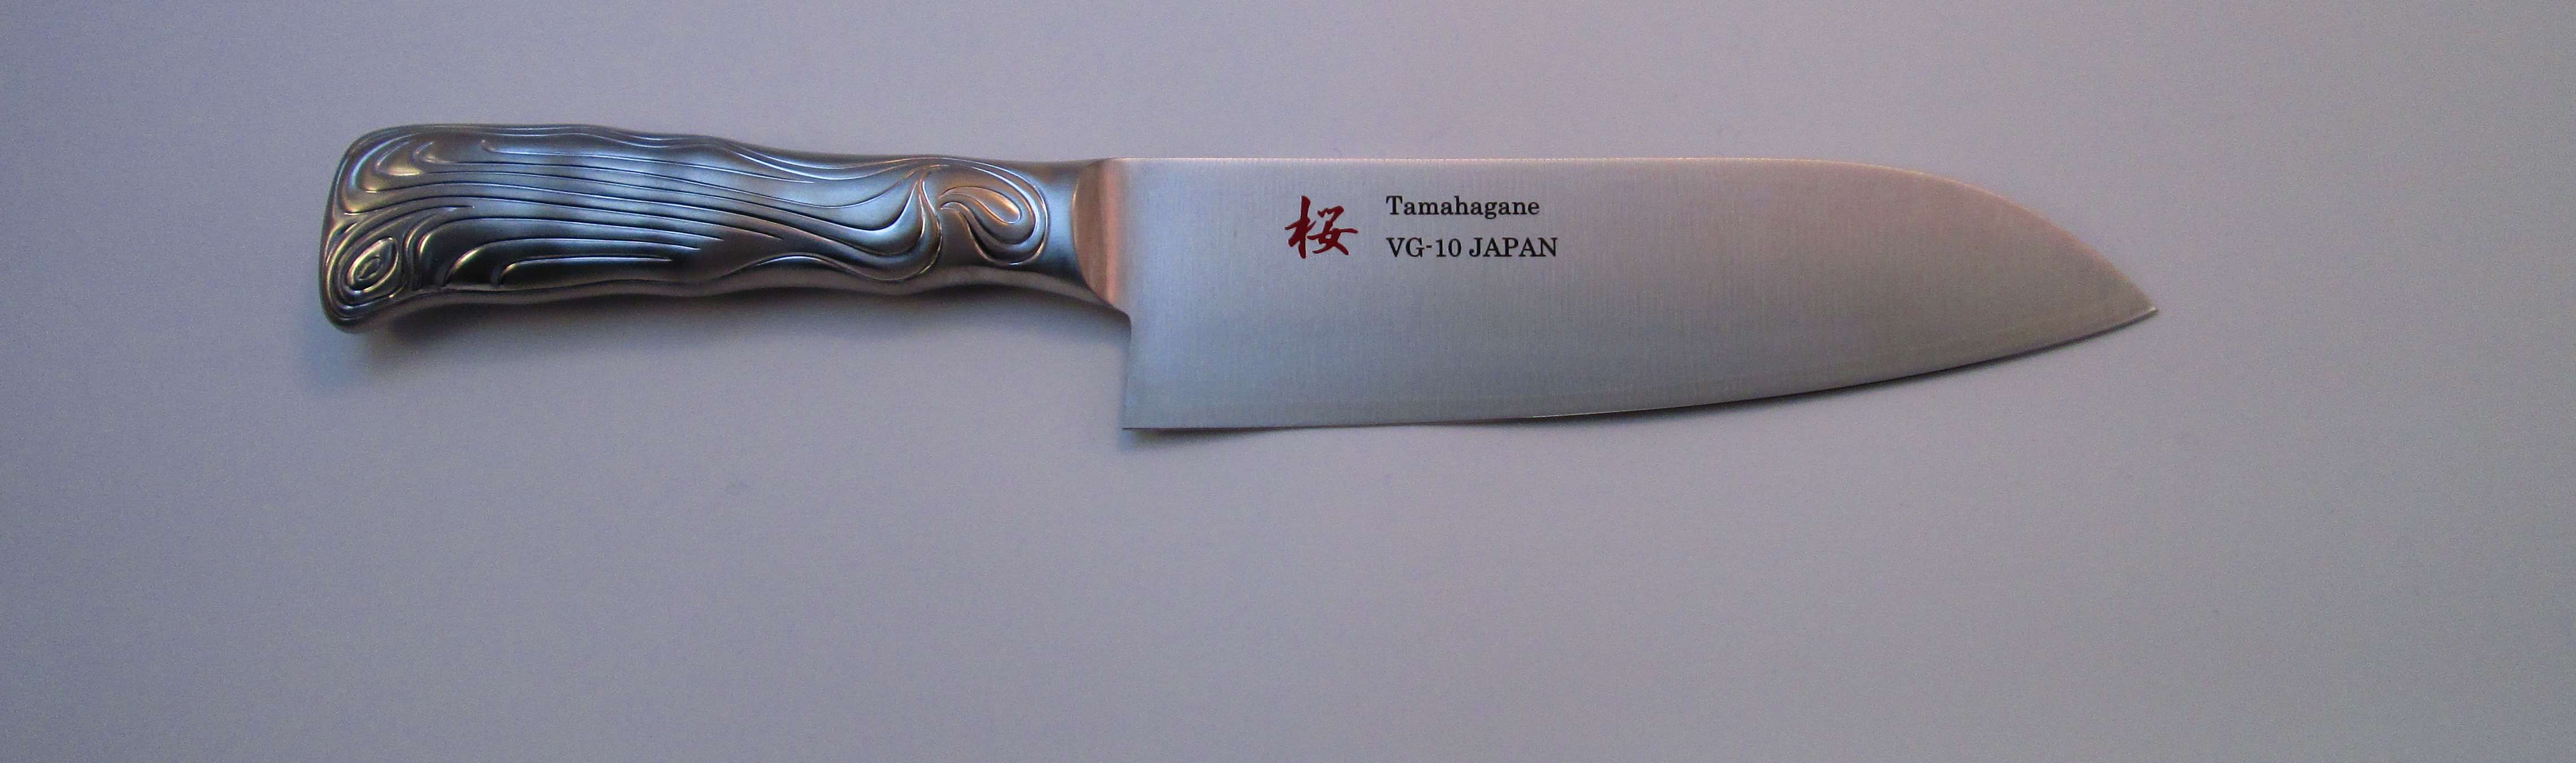 SAKURA VG-10 3ply SShandle Santoku170mm.